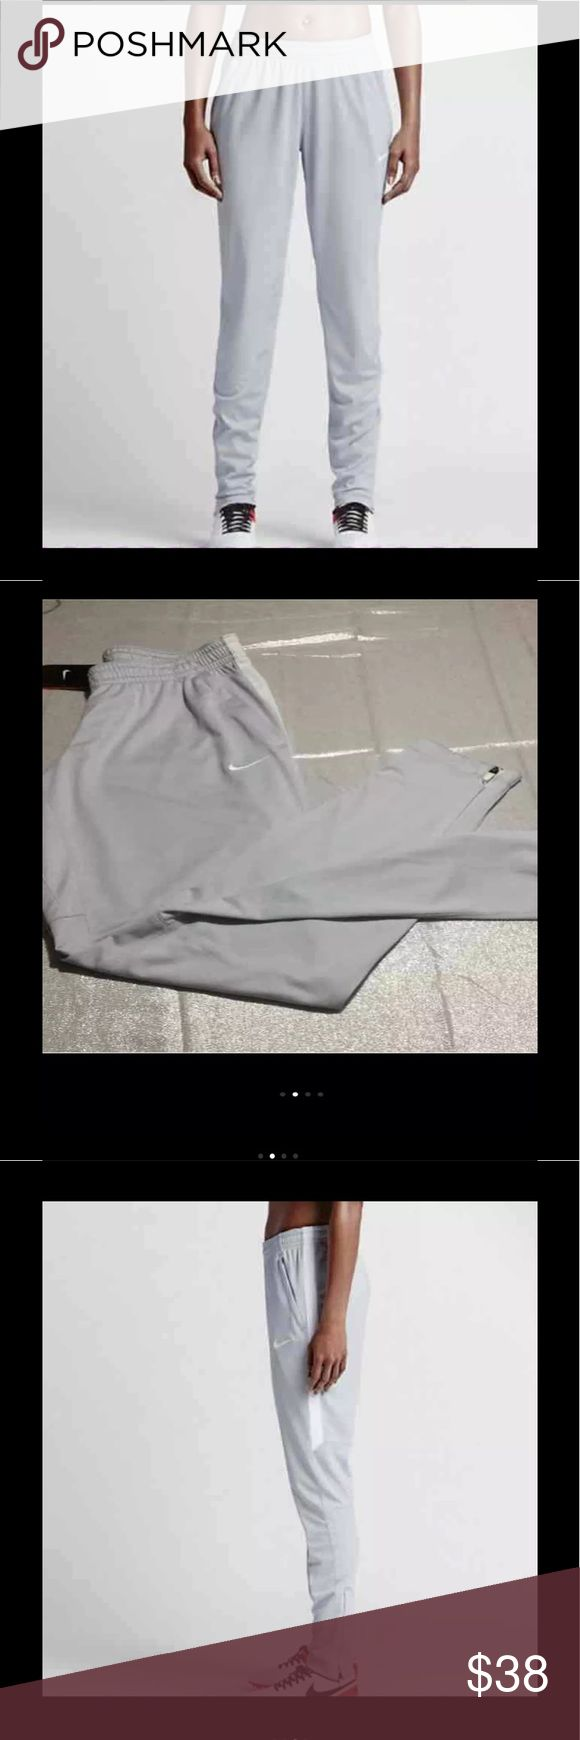 MEDIUM NIKE DRI FIT SOCCER PANTS NWT Nike Dri Fit Soccer Pants, Size Medium, NWT, Zippered Bottoms, Zippered Pockets, Color Pure Platinum  PRICE FIRM Nike Pants Track Pants & Joggers